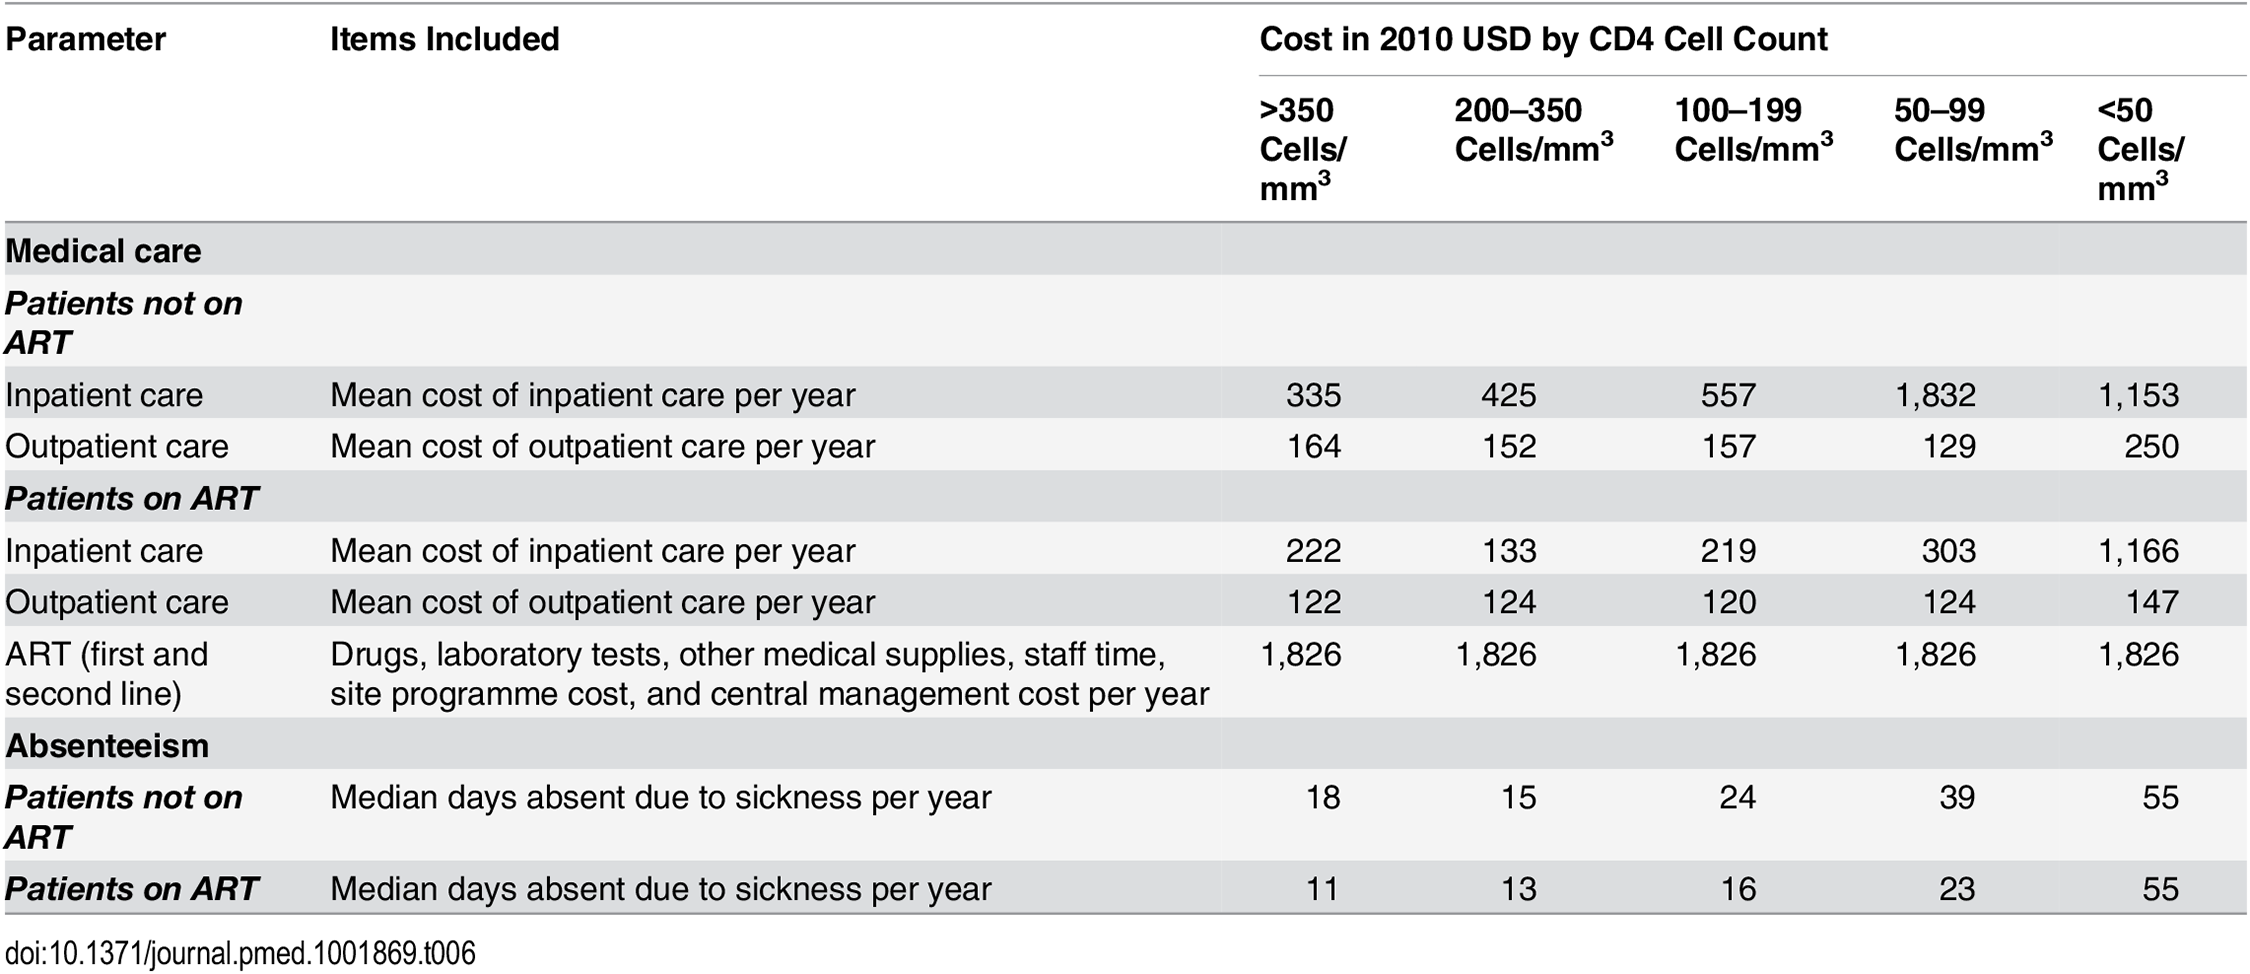 Annual per employee cost and frequency of absenteeism by CD4 cell count category, incremental to that of HIV-negative employees.